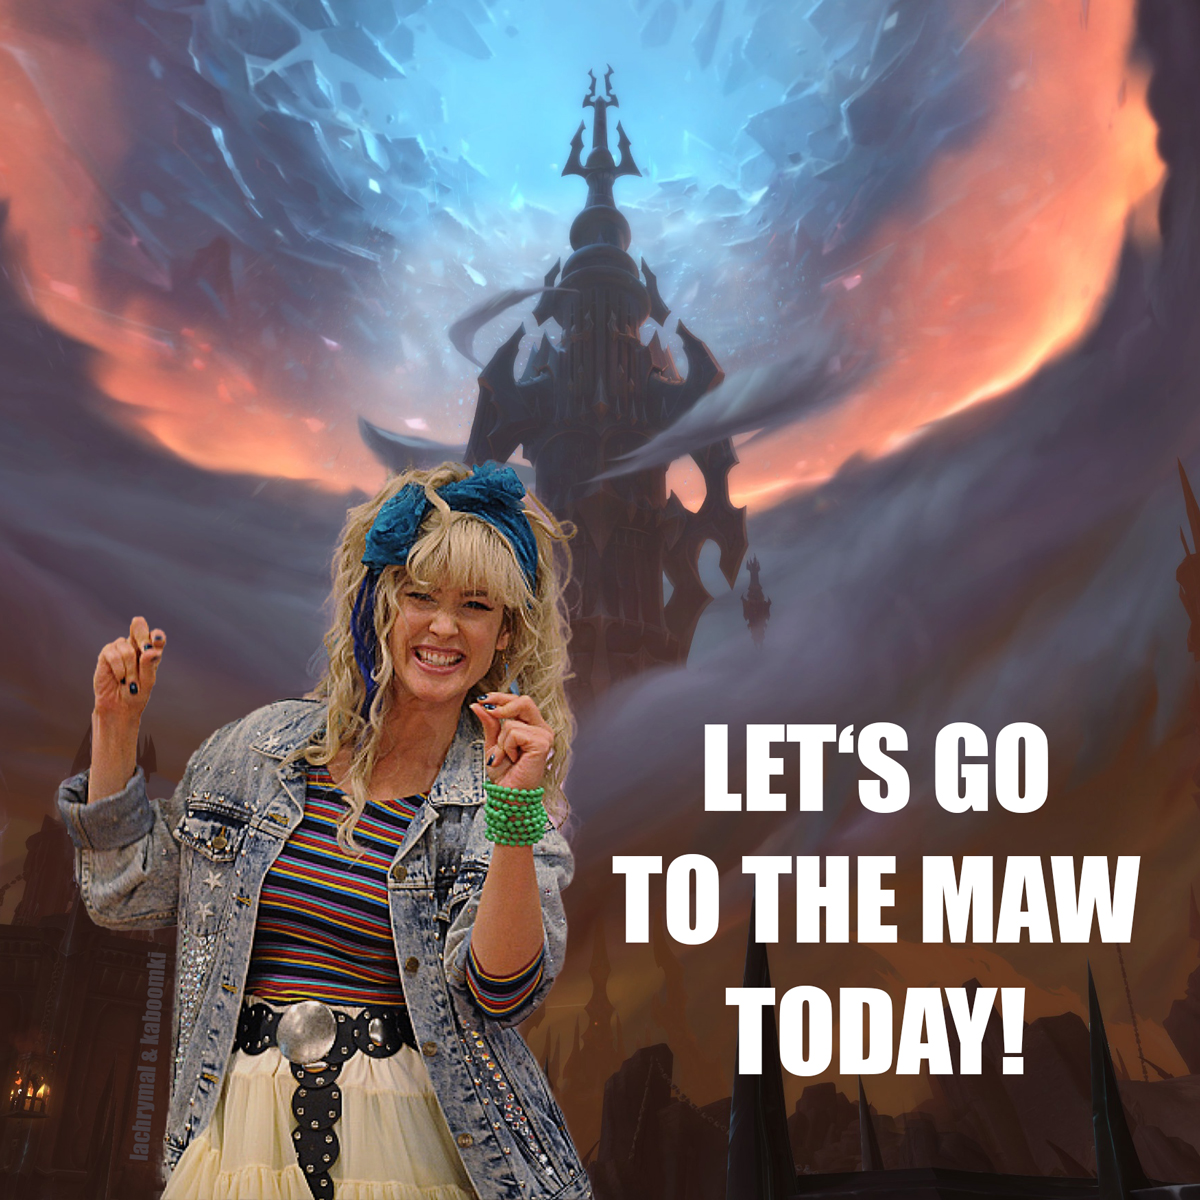 Let's Go To The Maw